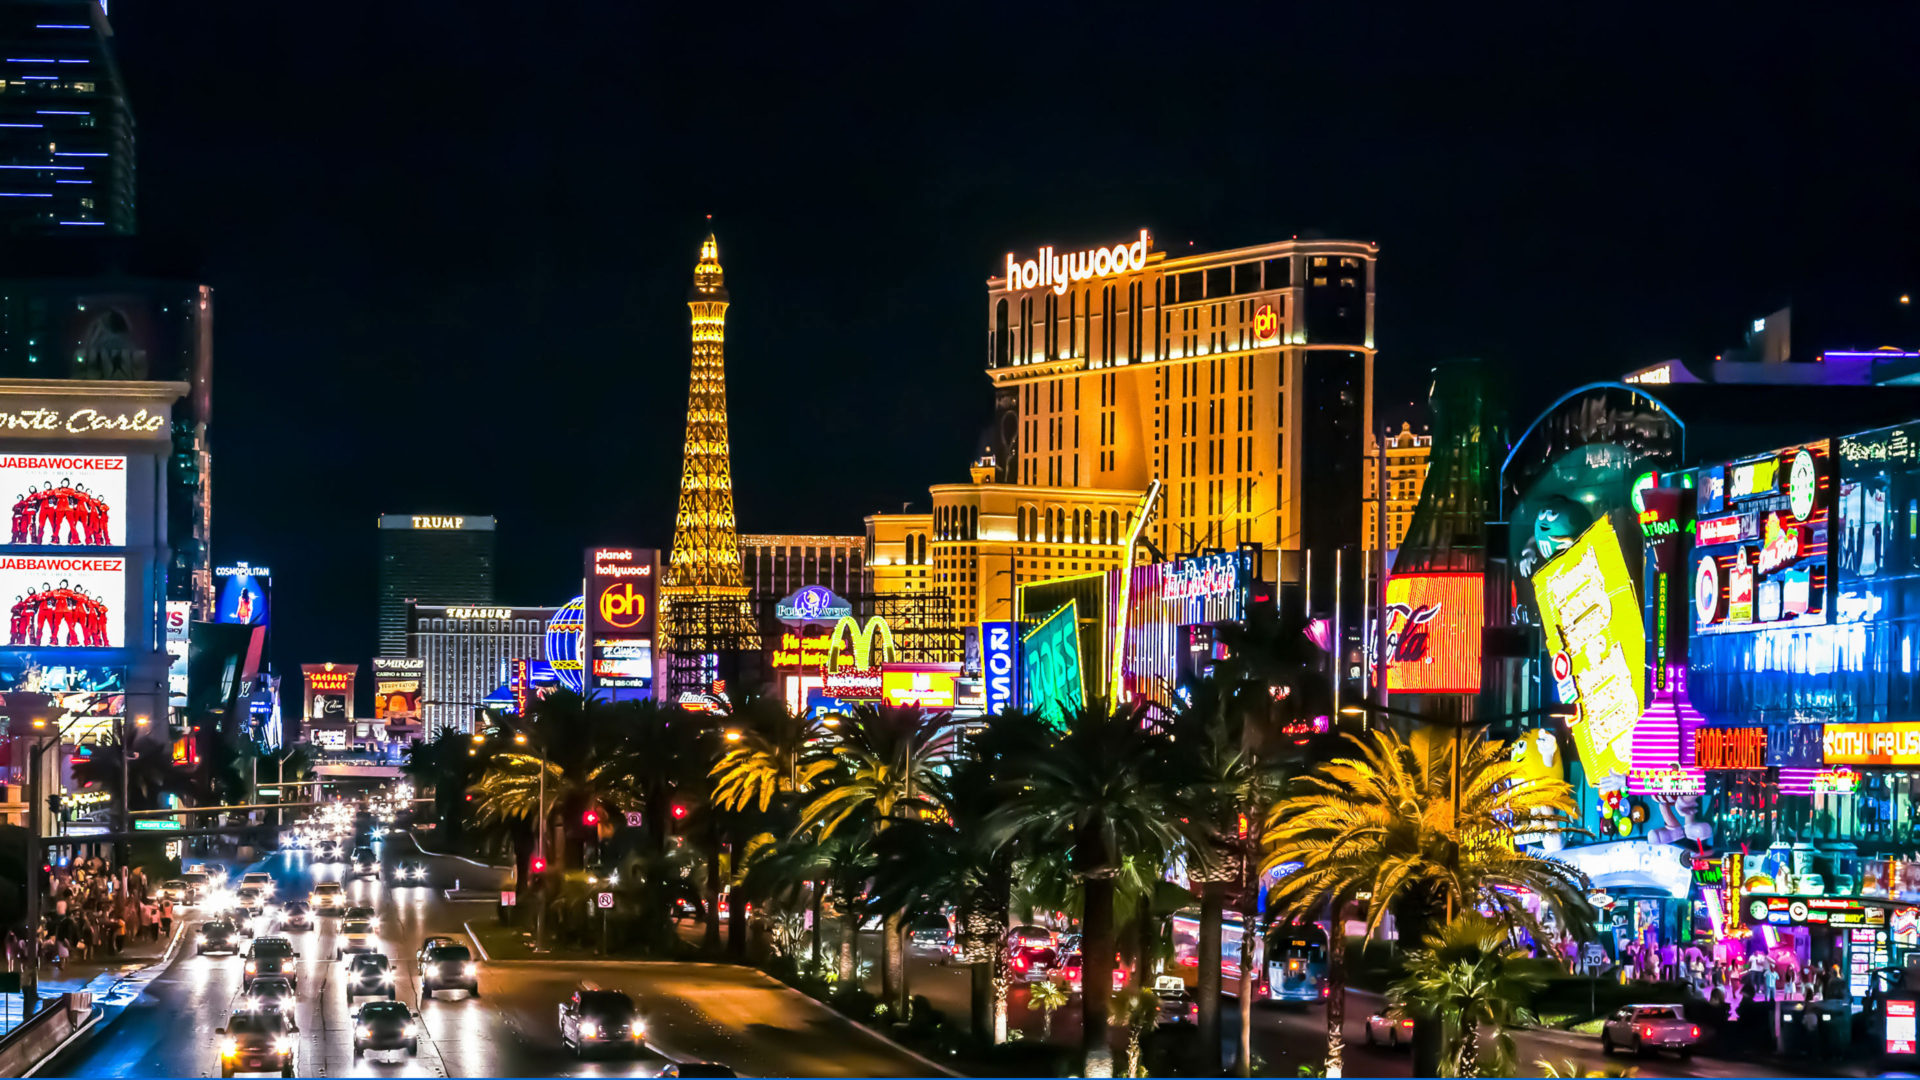 Las Vegas Hotel Hollywood Resort Amp Casino Nevada North America Hd Wallpaper For Pc Tablet And